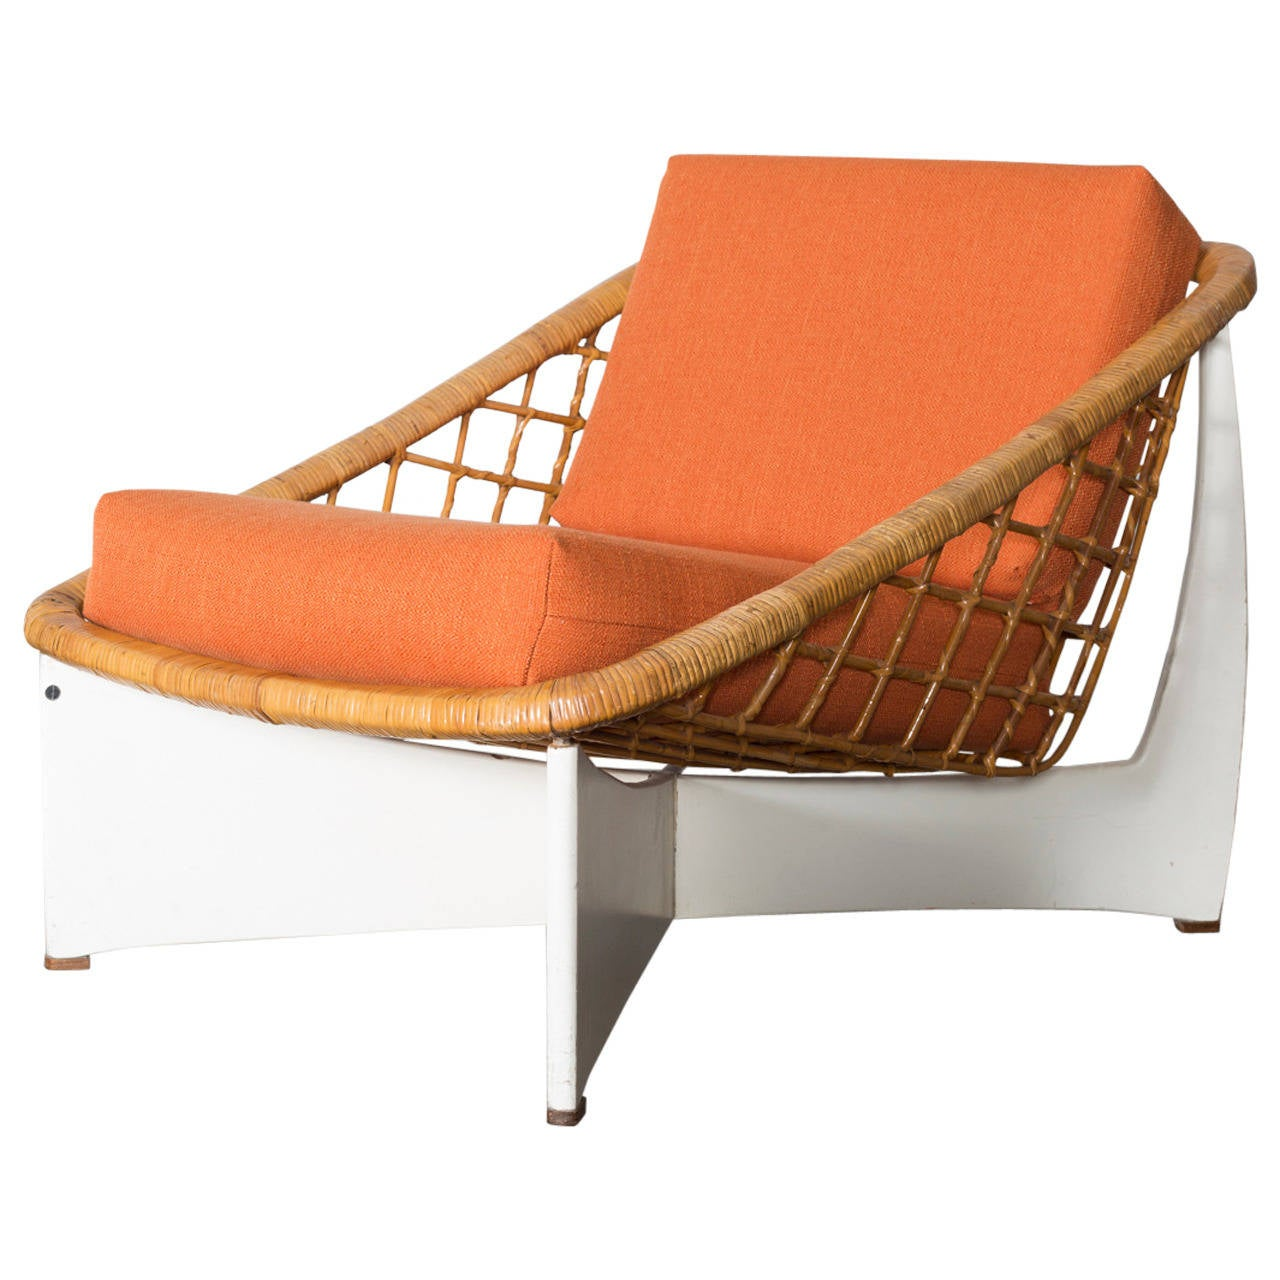 MOD Bamboo Low Lounge Chair by Pastoe at 1stdibs